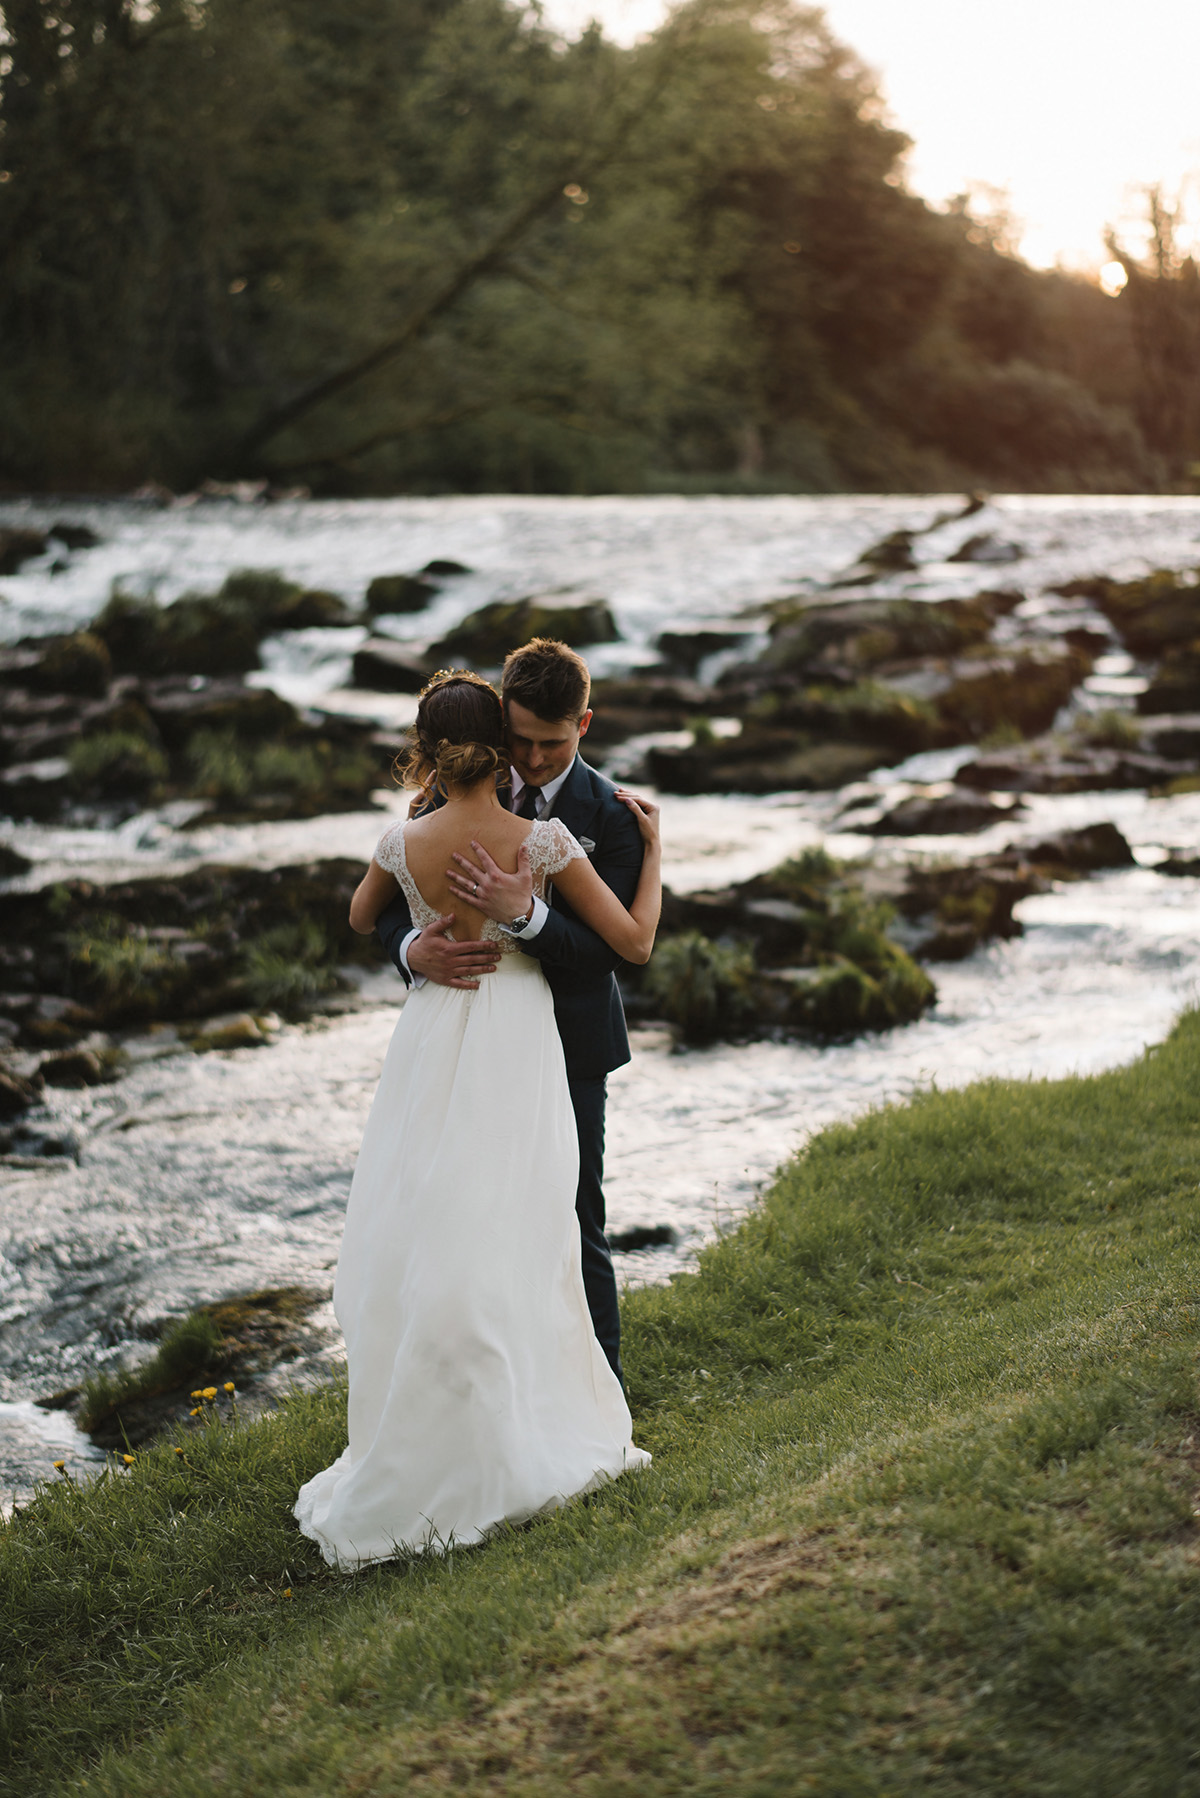 Intimate chic spring wedding | Northern Ireland Creative wedding photographer